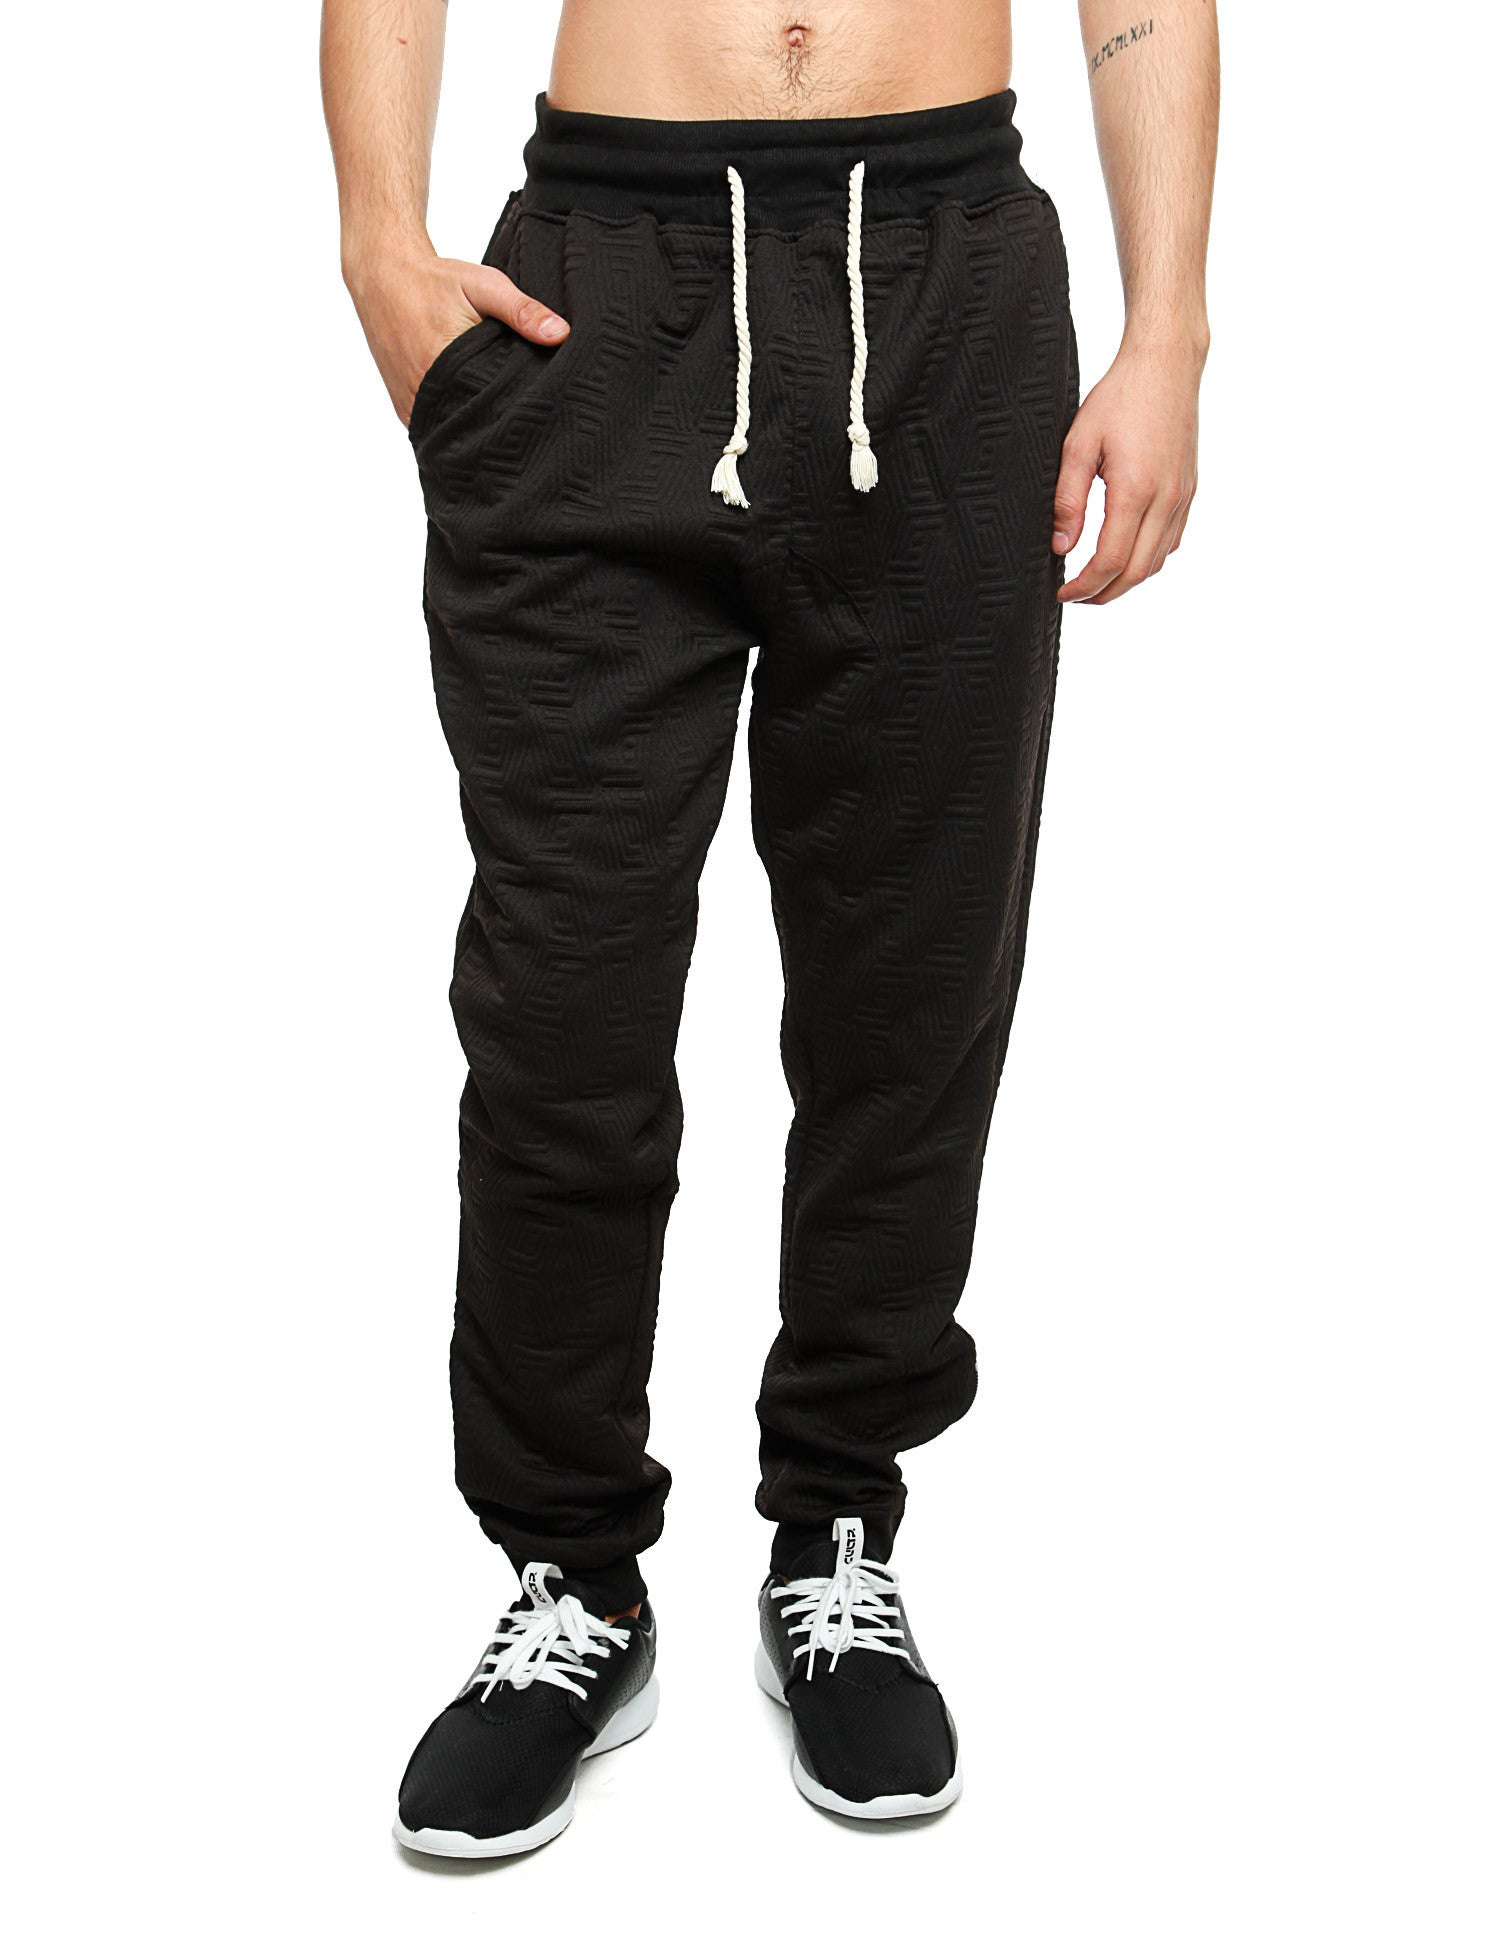 Imperious ´Quilted´ Sweatpant FP542 Black